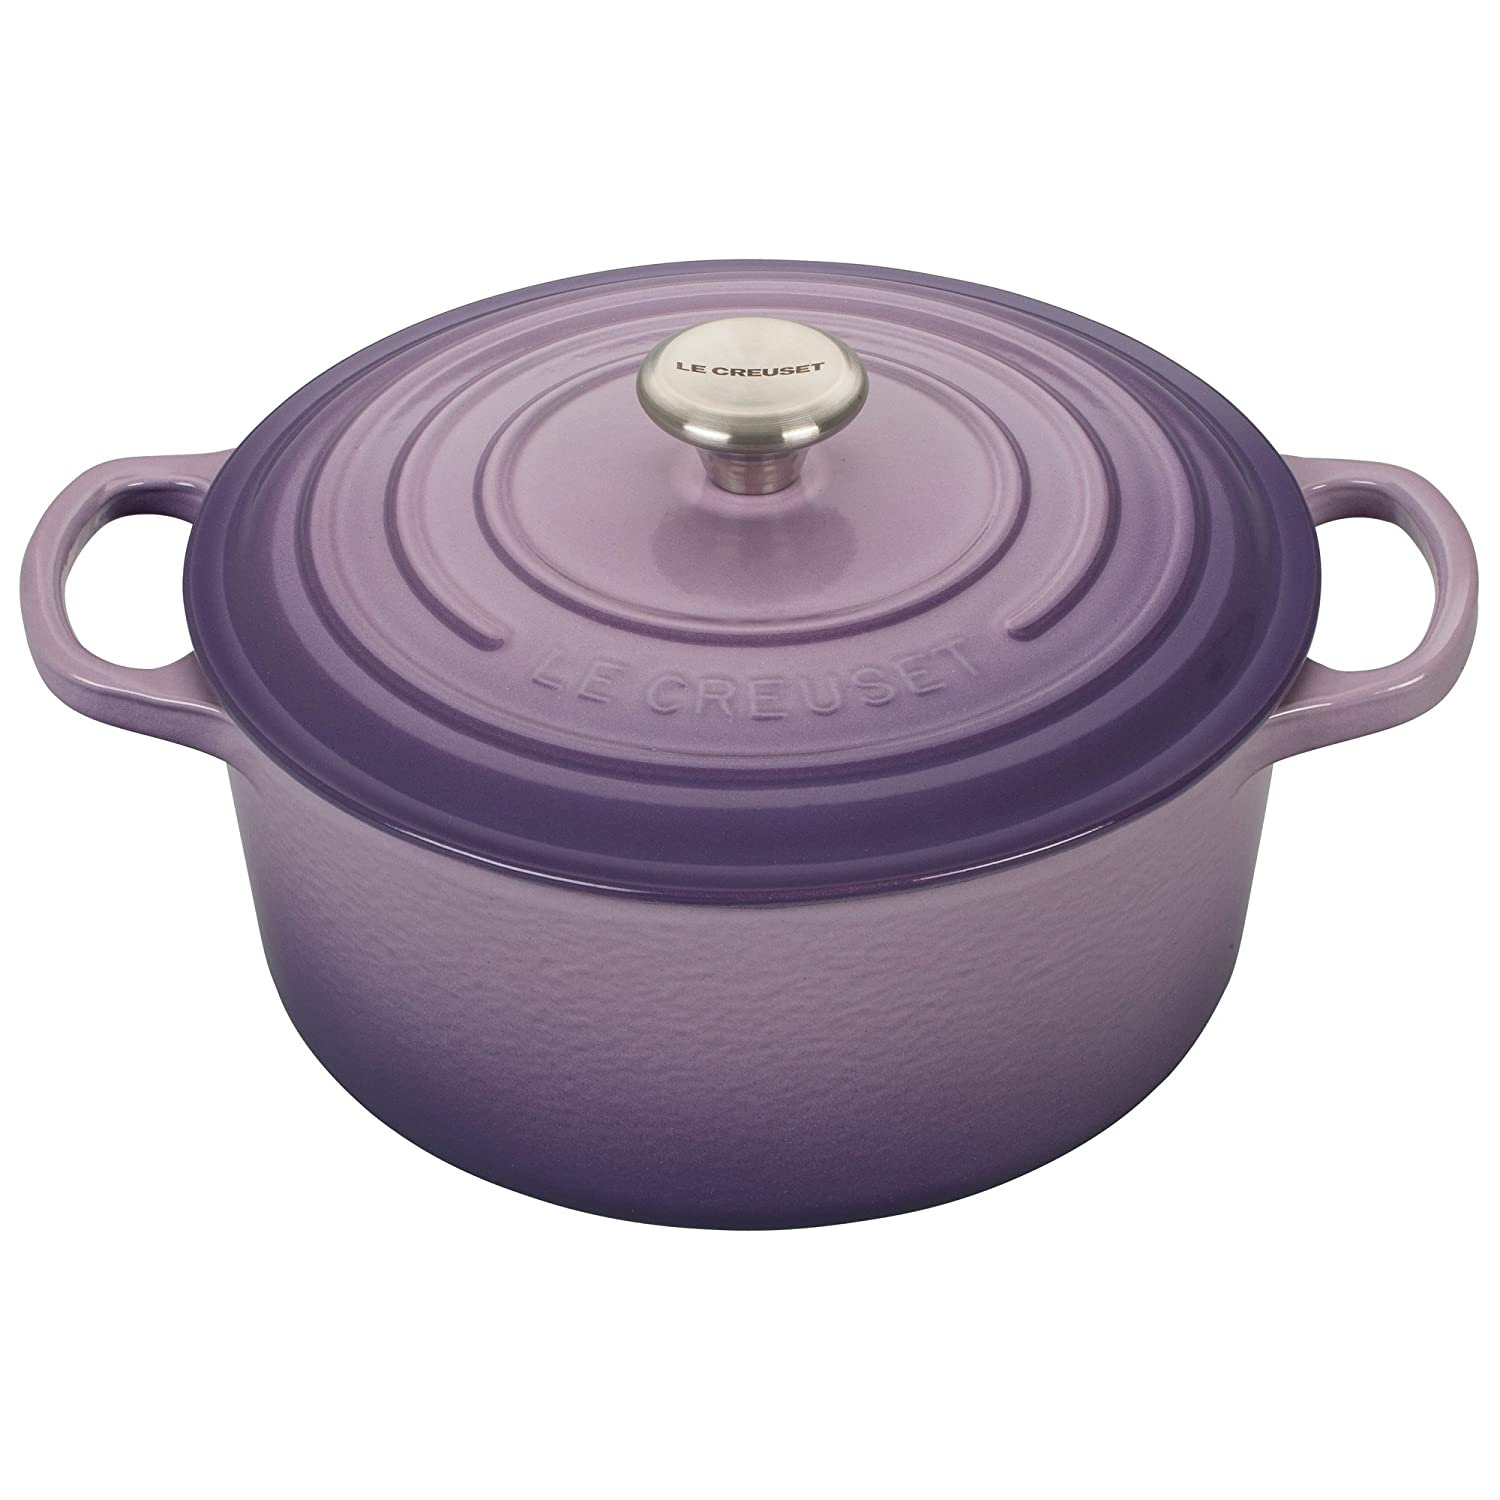 Le Creuset Signature Enameled Cast Iron 3.5 Quart Round French Oven